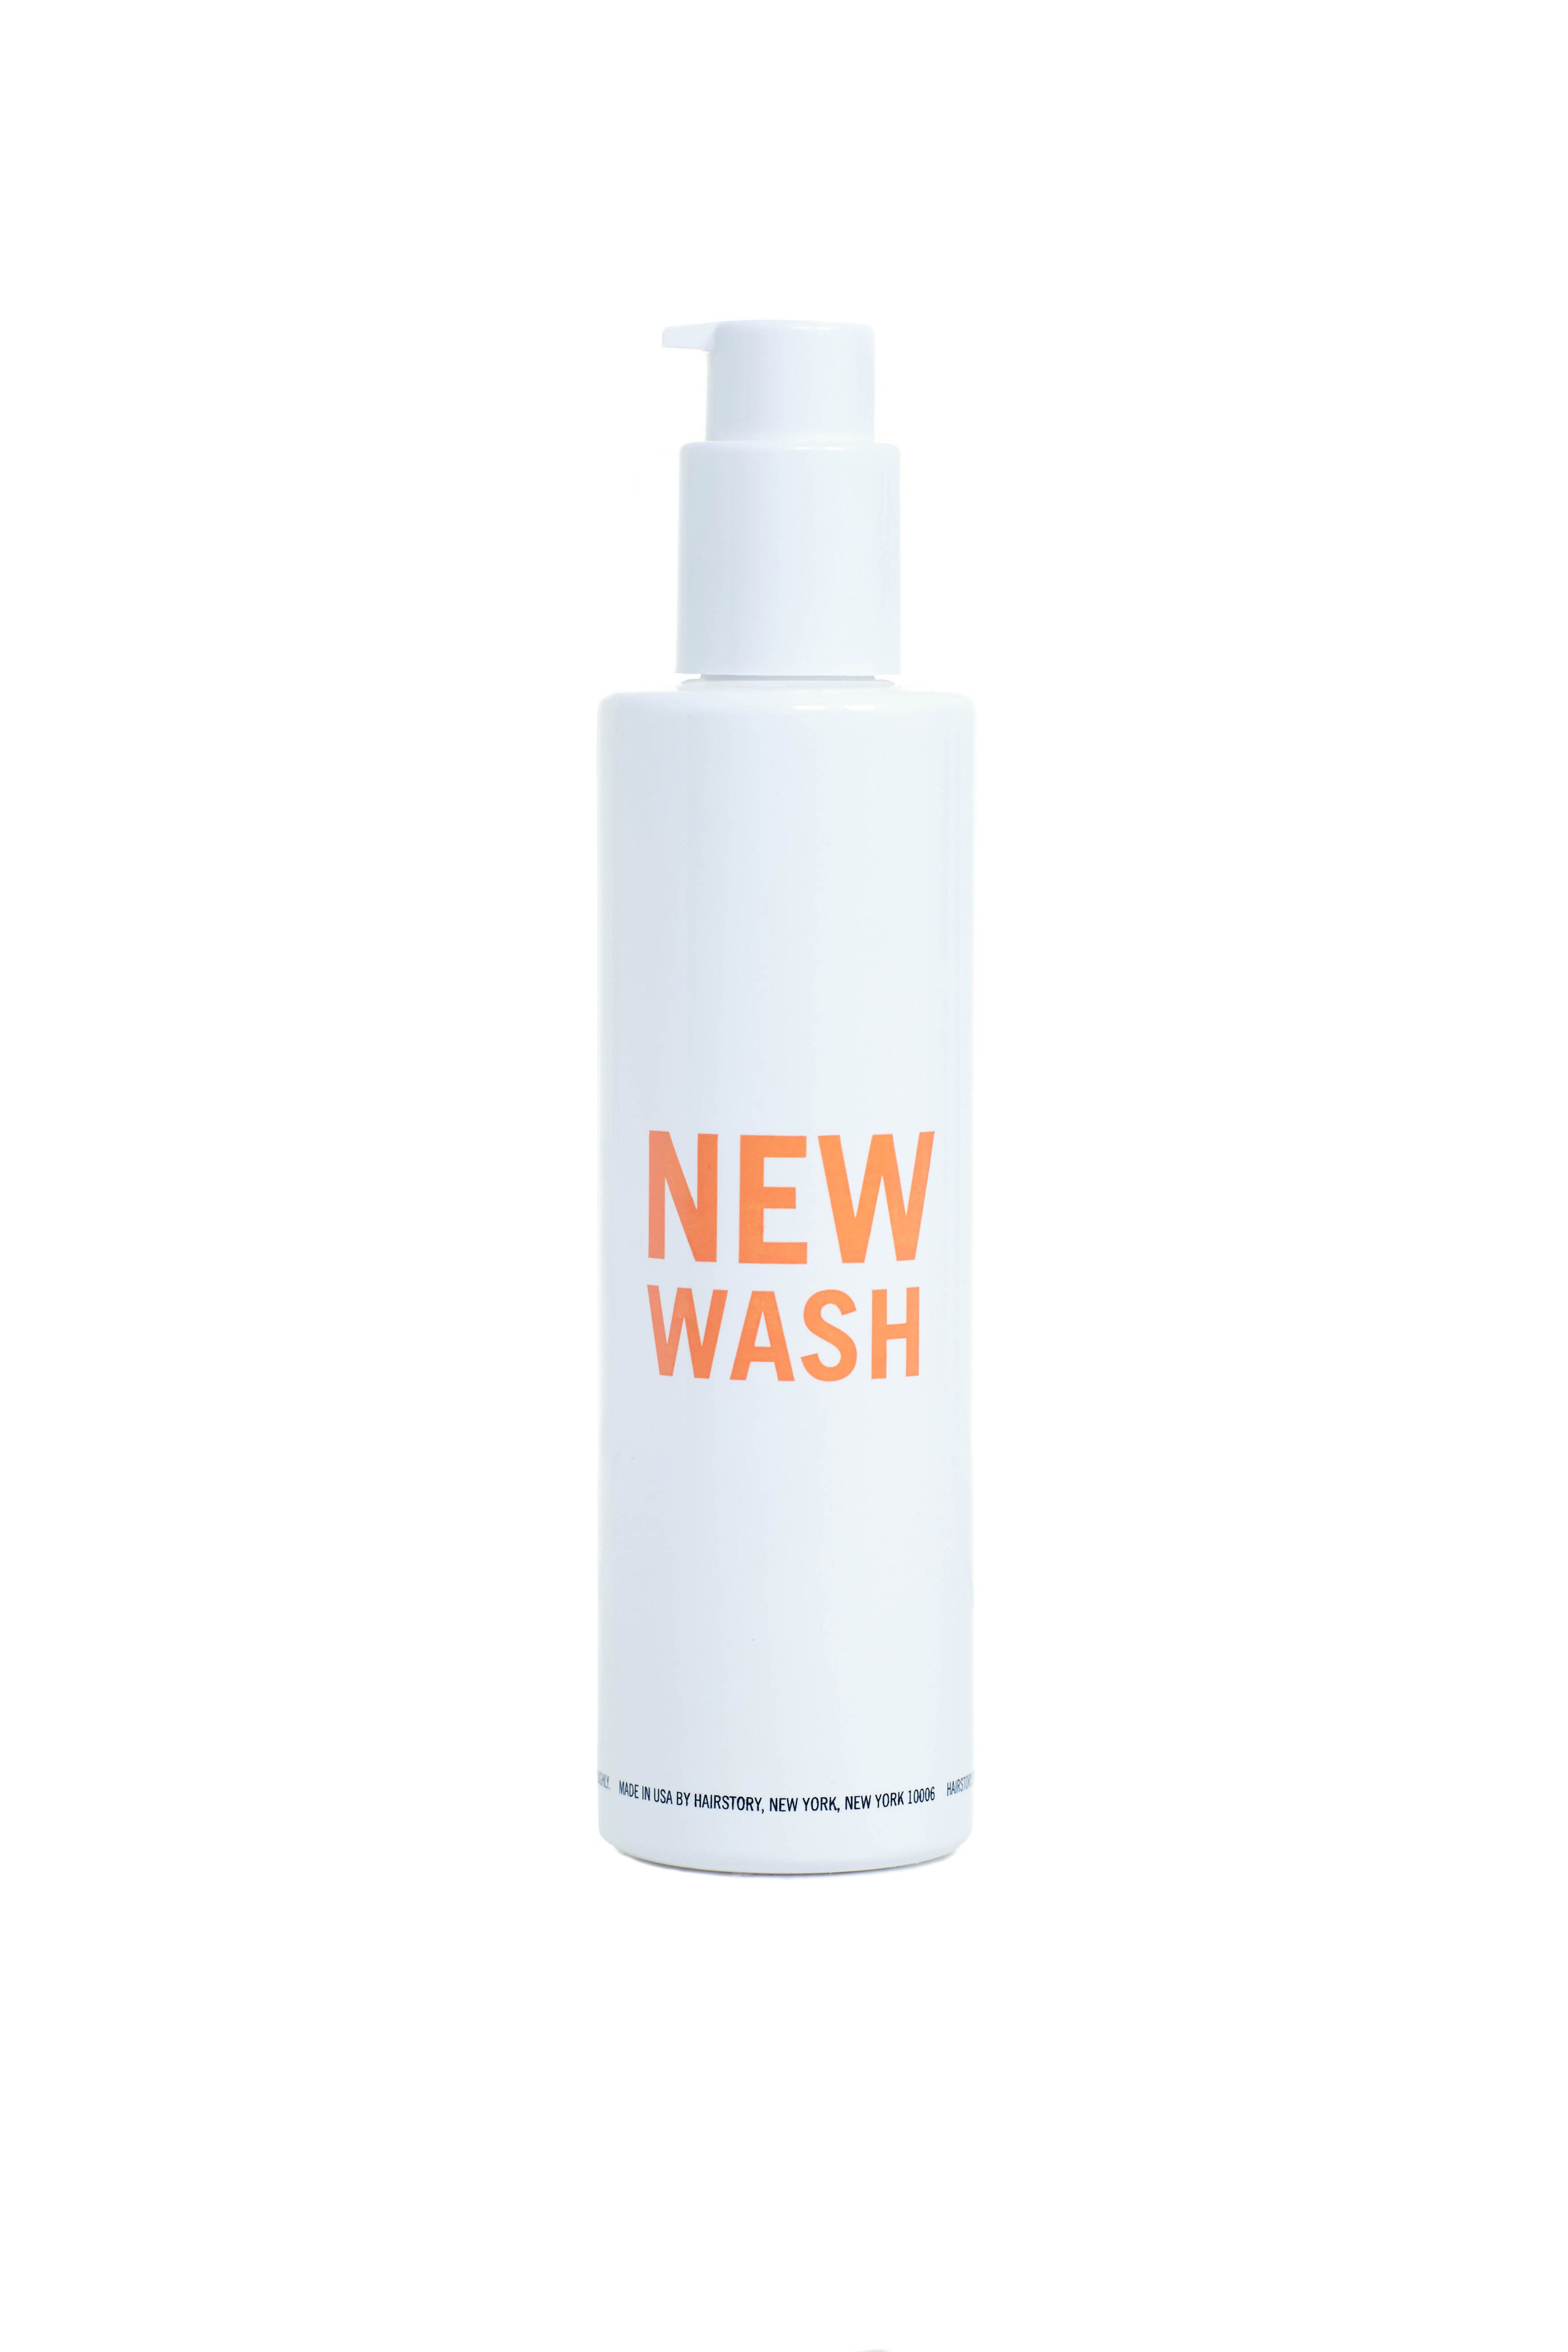 HS new wash bottle1.jpg